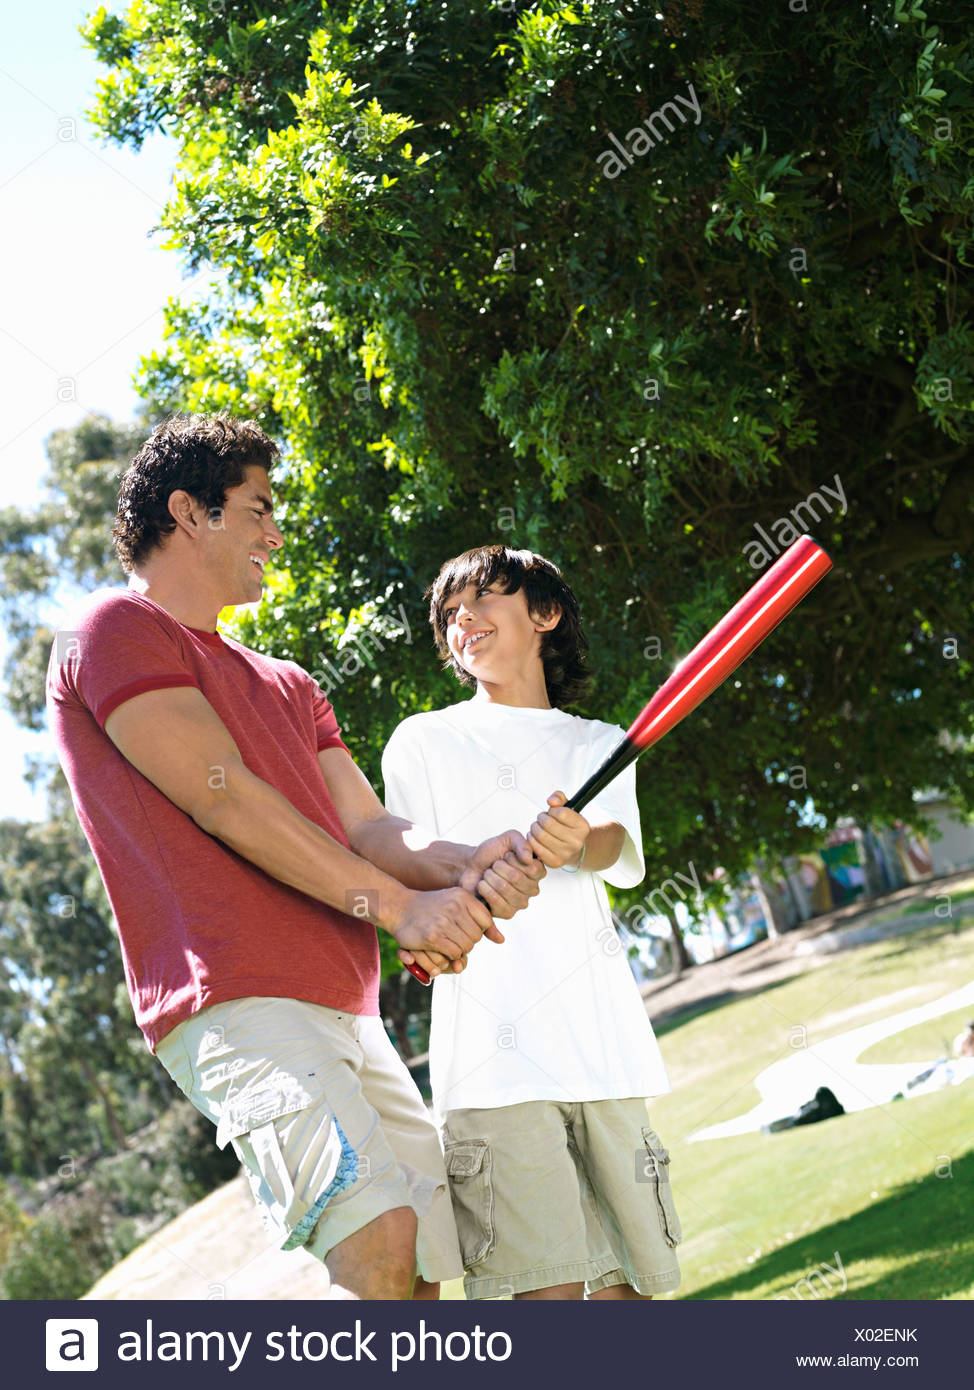 Father teaching son 10 12 how to hold baseball bat standing on grass in park smiling tilt - Stock Image